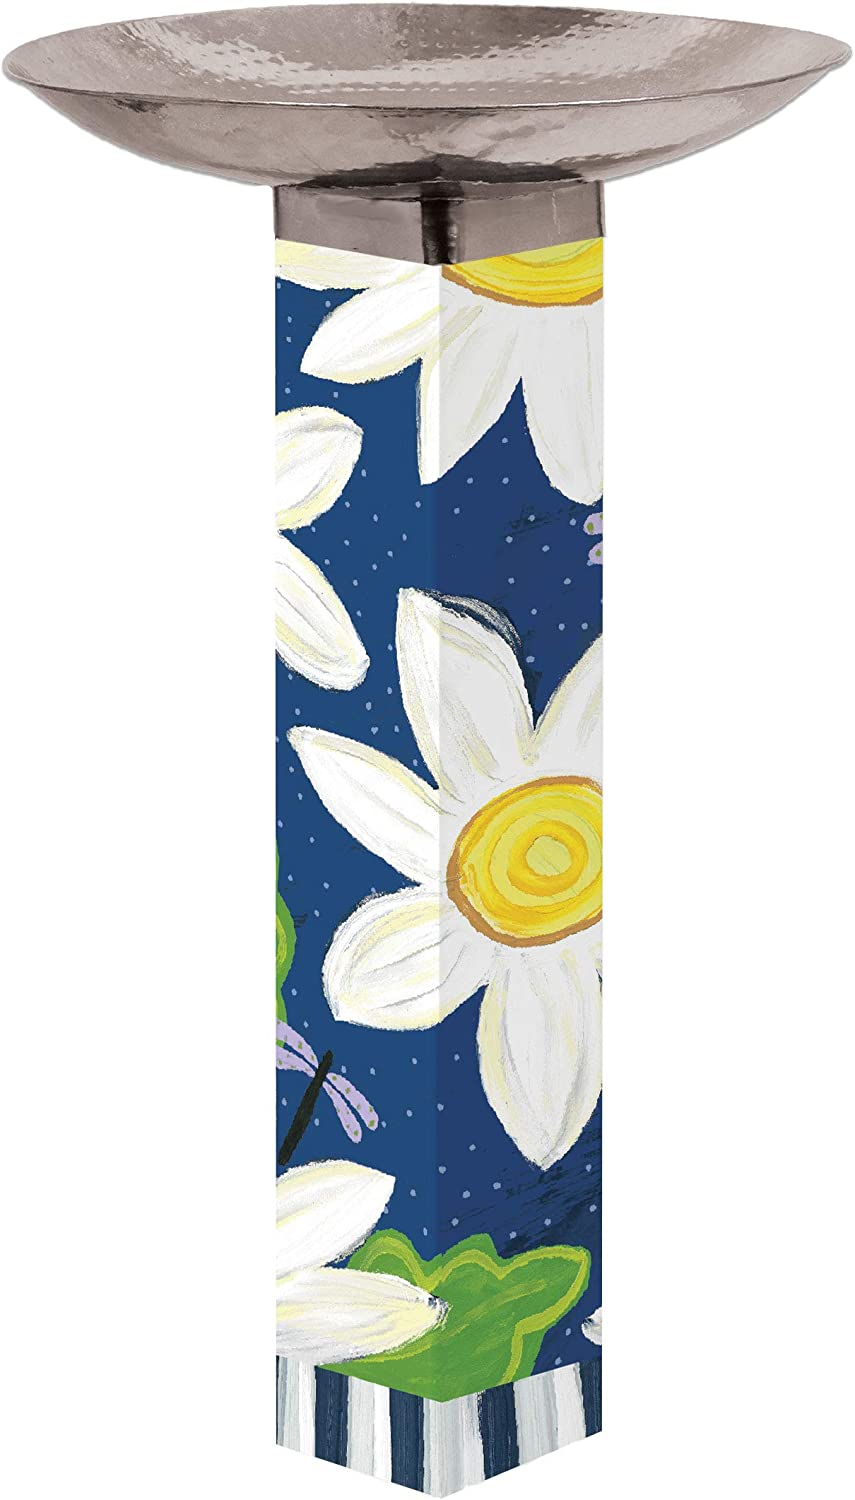 Studio M Daisy Blues Bird Bath Art Pole Hand-Hammered Stainless Steel Top, Hardware Included for Easy Installation, Printed in USA, 31 Inches Tall with 18 Inch Dia. Bowl